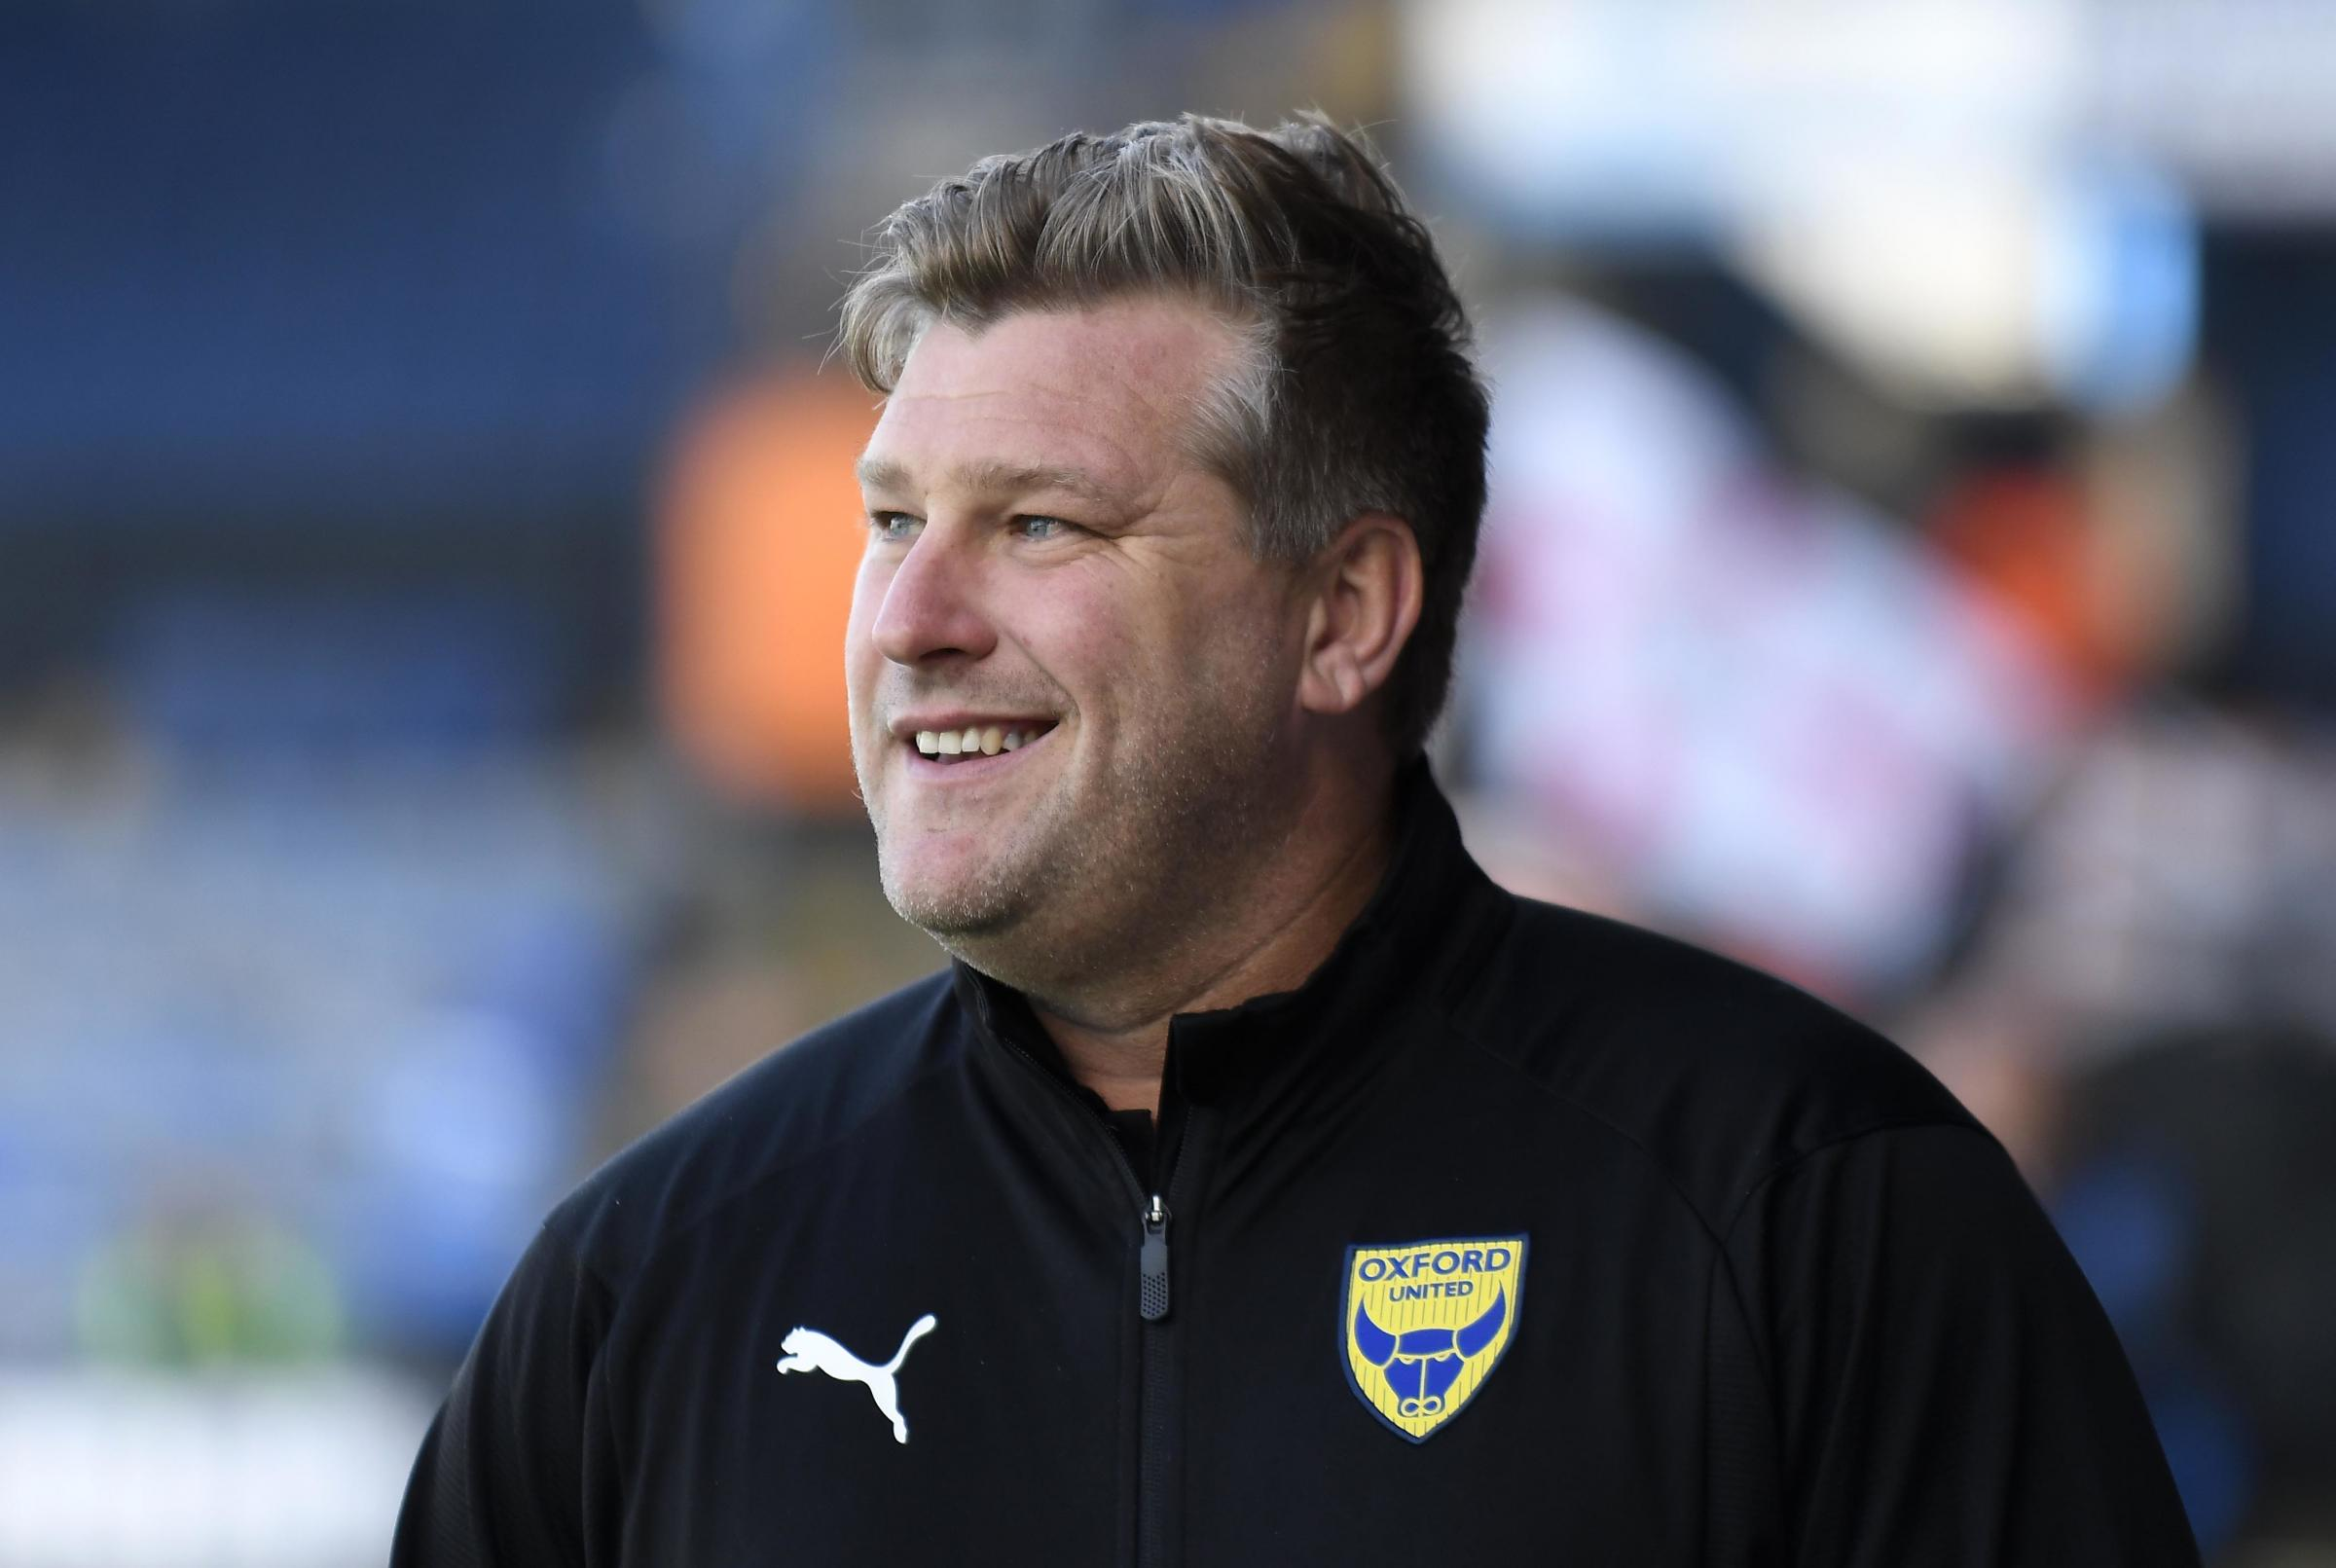 Oxford United boss Karl Robinson is going on a scouting mission to Scotland this weekend